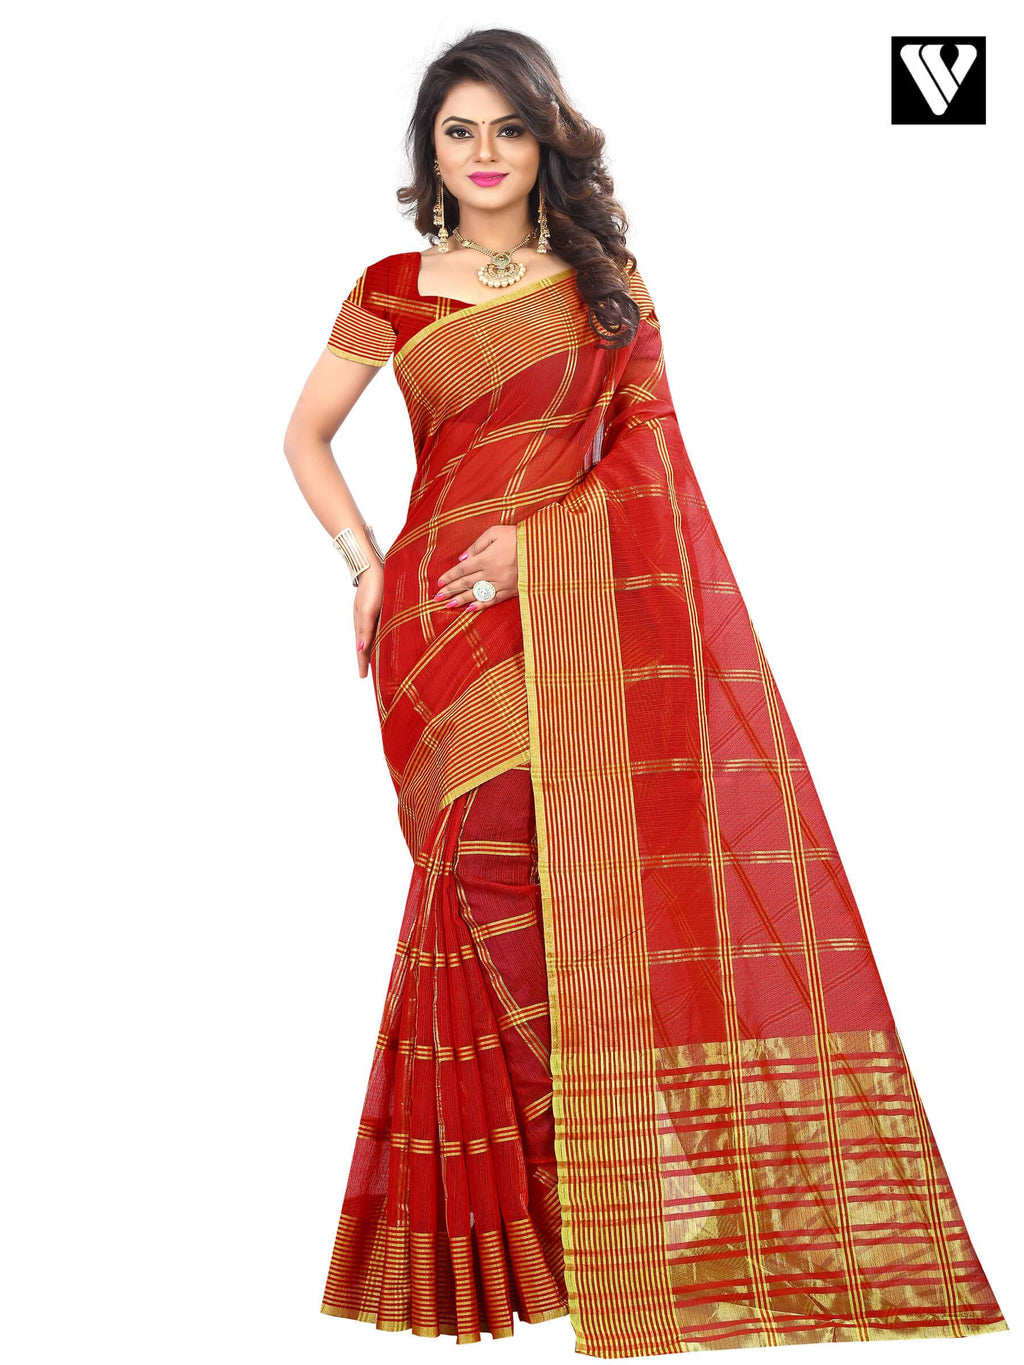 Temple Wear Traditional Cotton Fabric Saree In Red